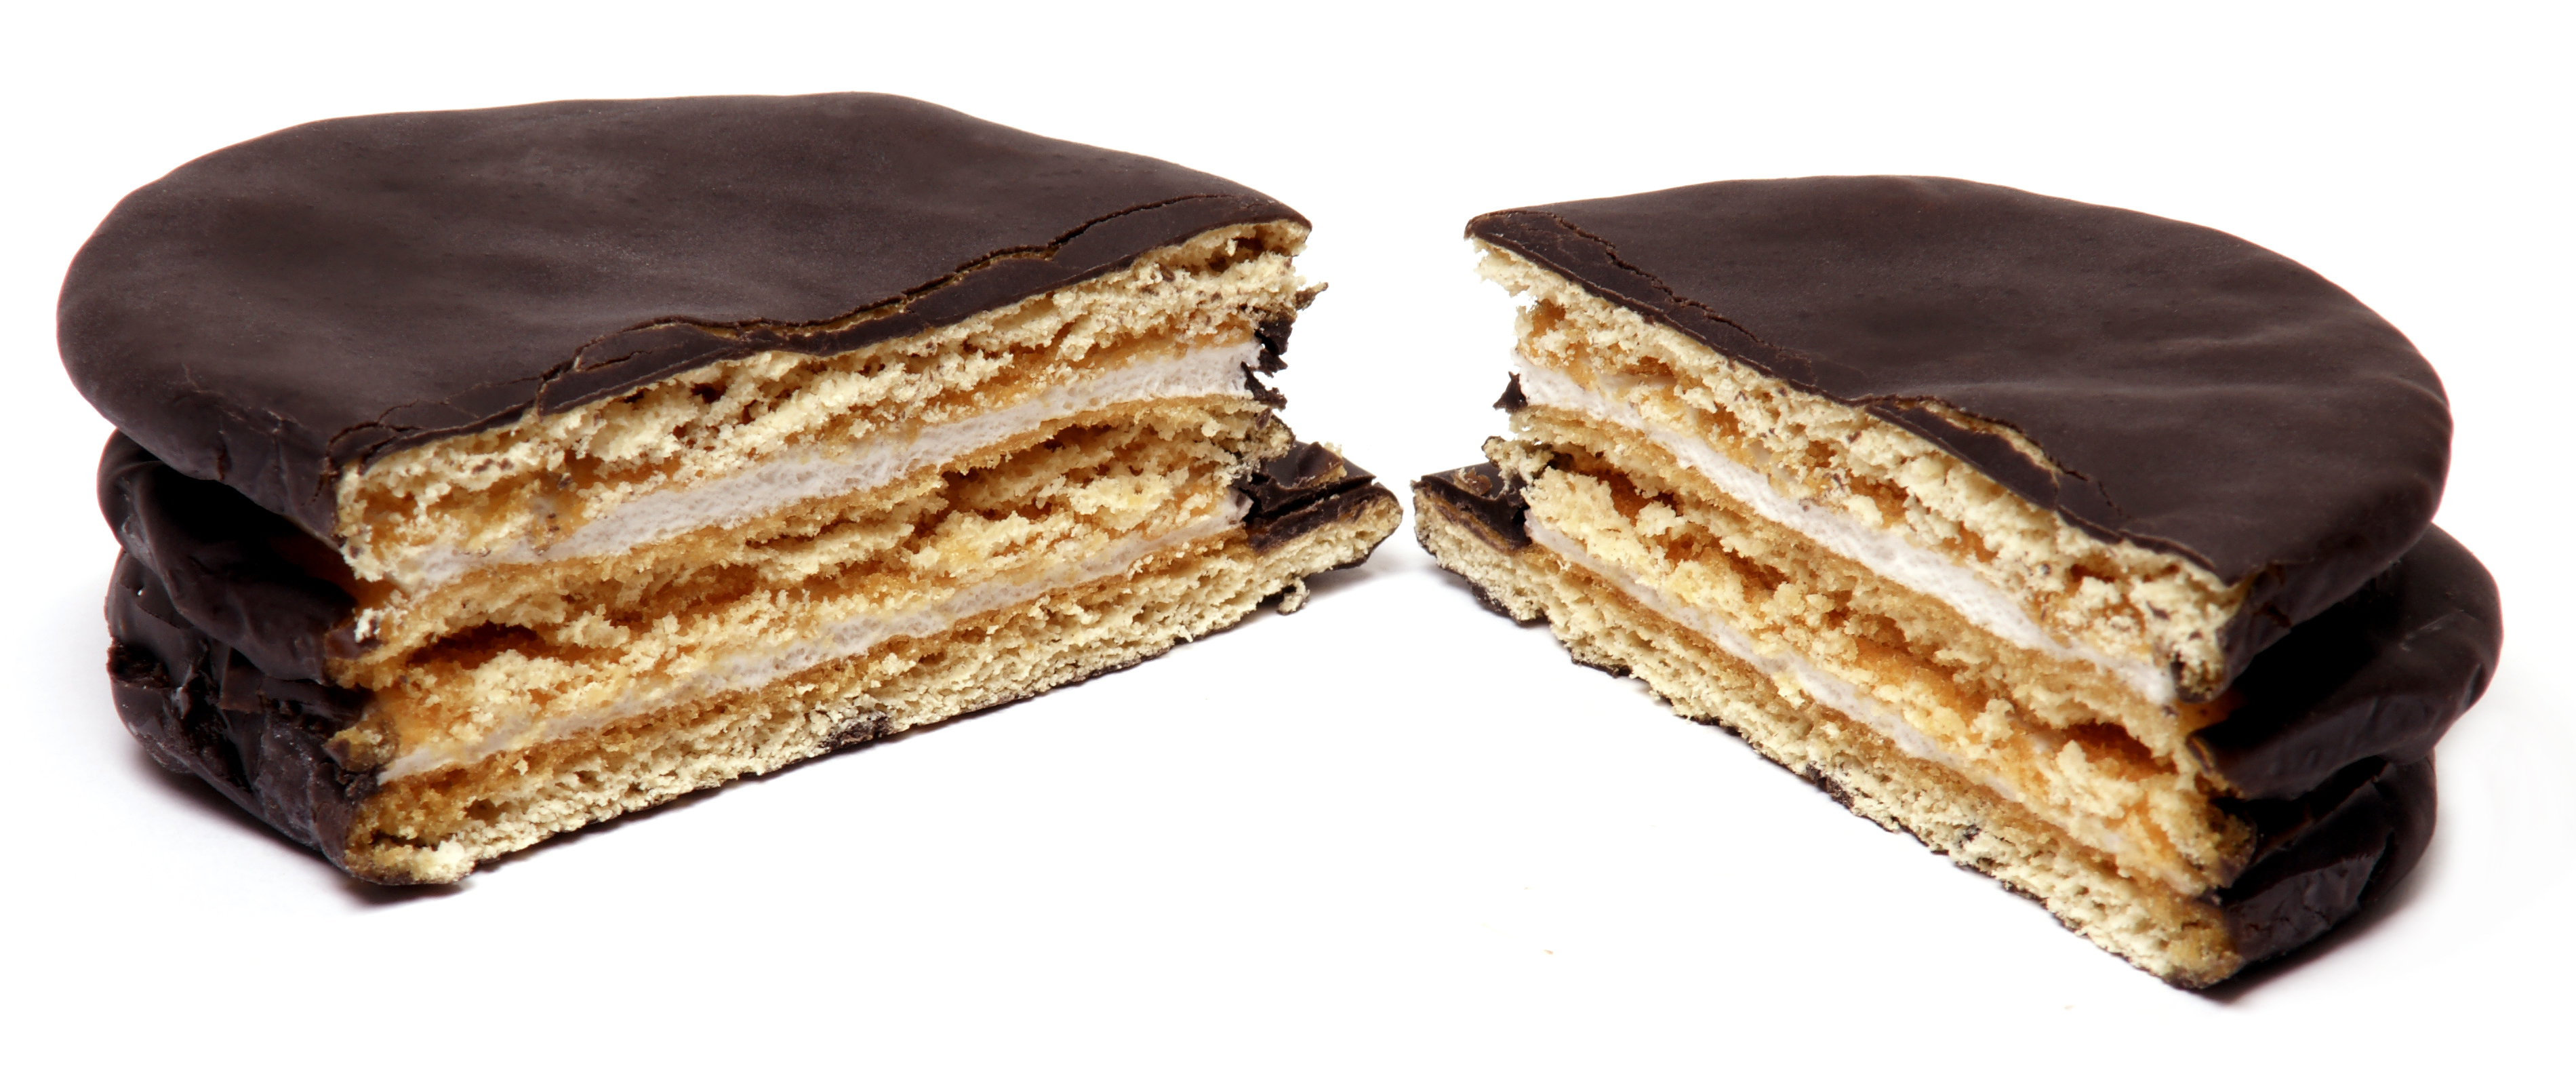 File:Moon-Pie-Split.jpg - Wikimedia Commons